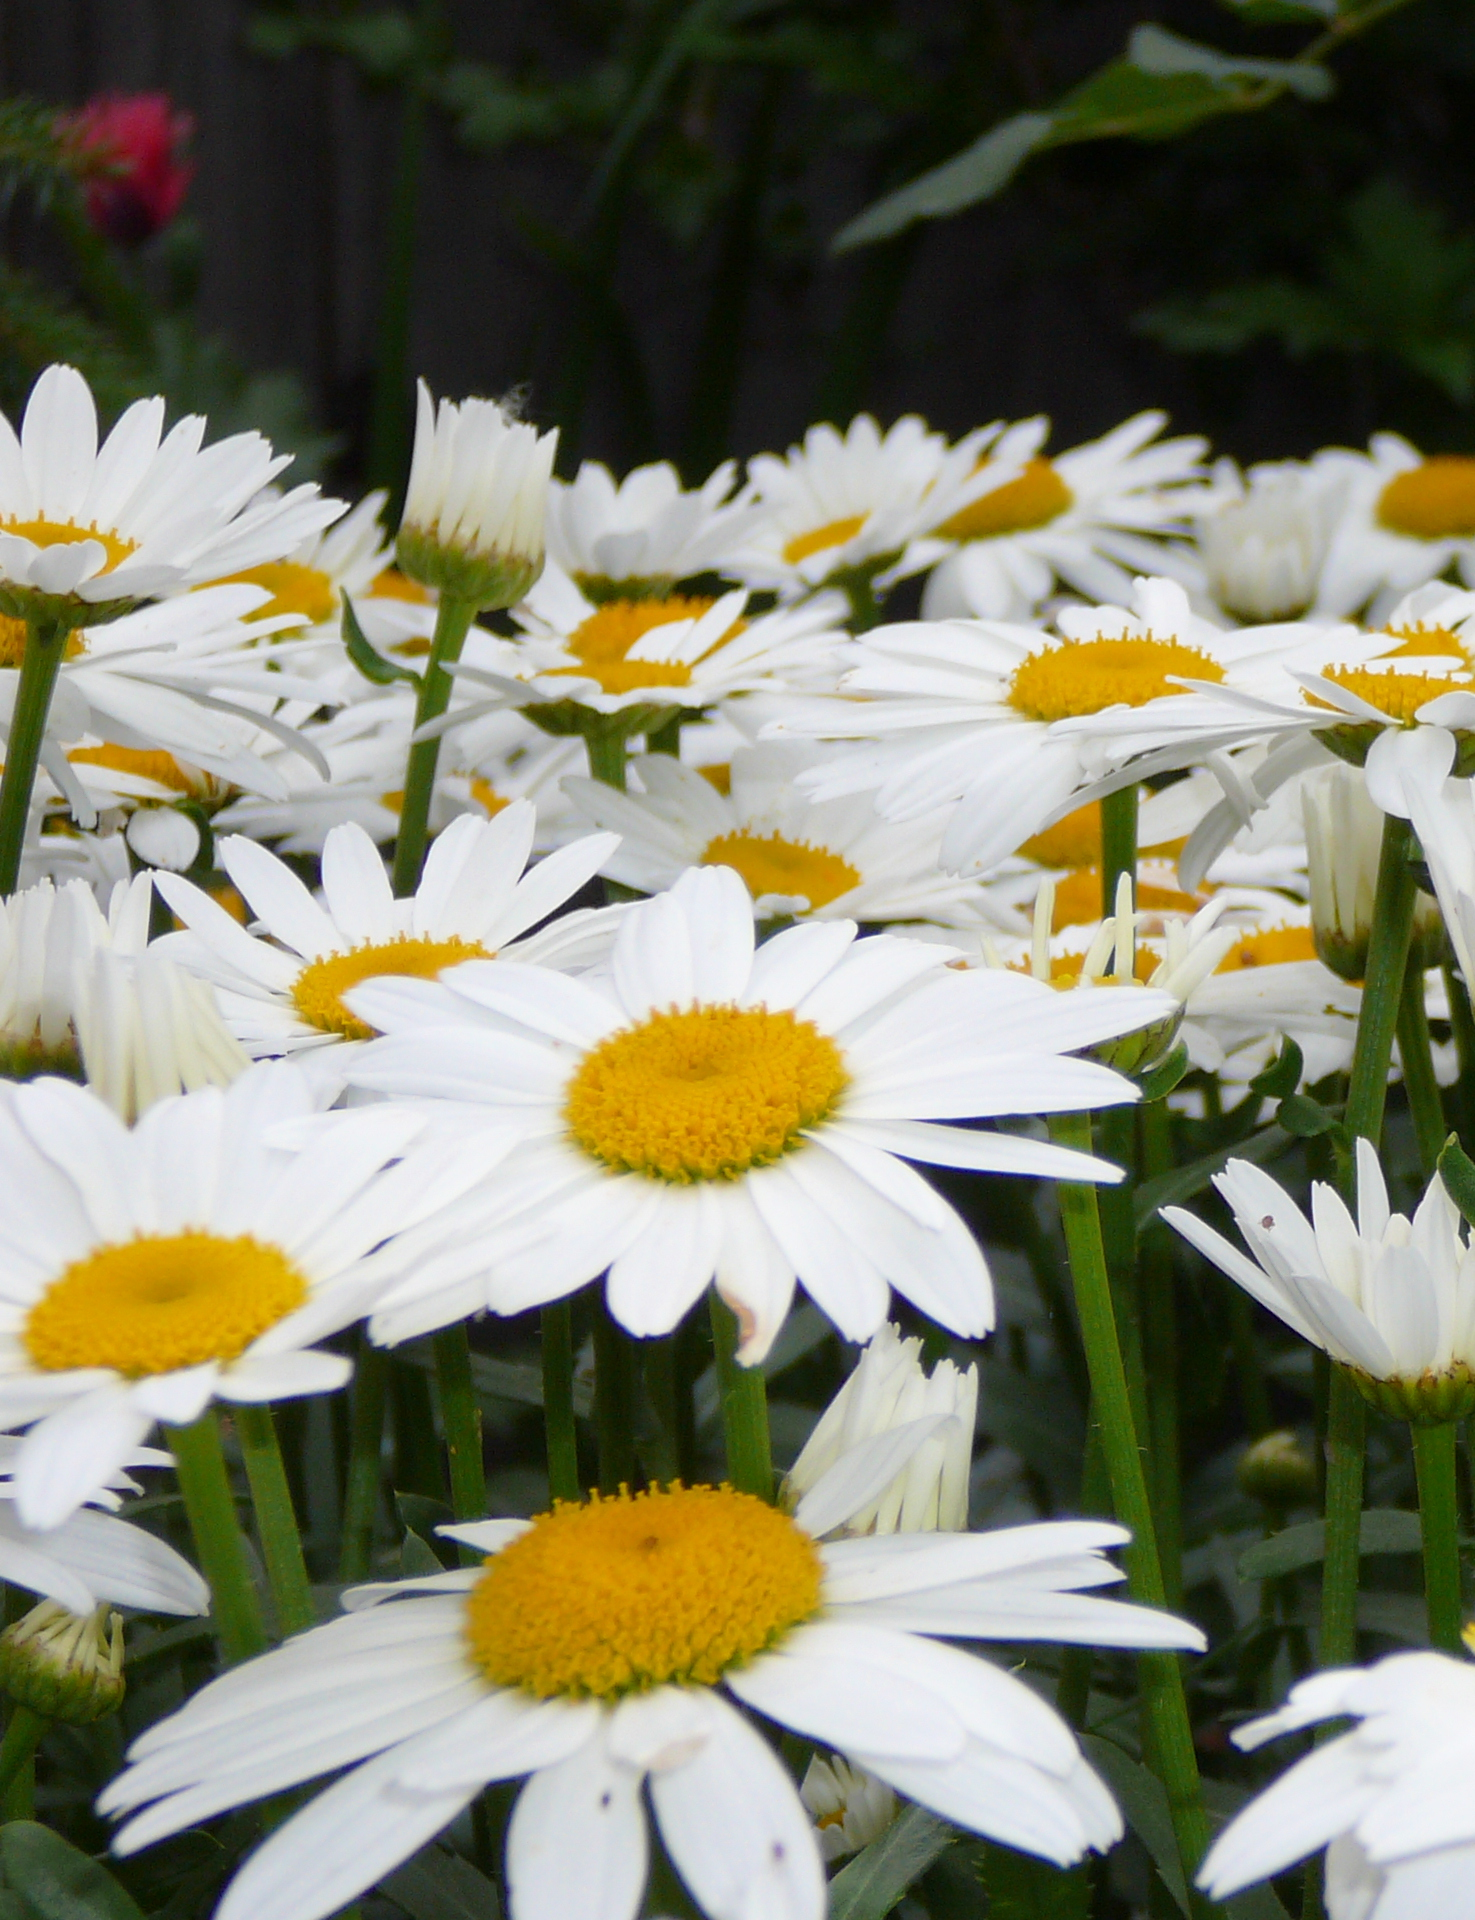 Chrysanthemum 'Snow Lady'